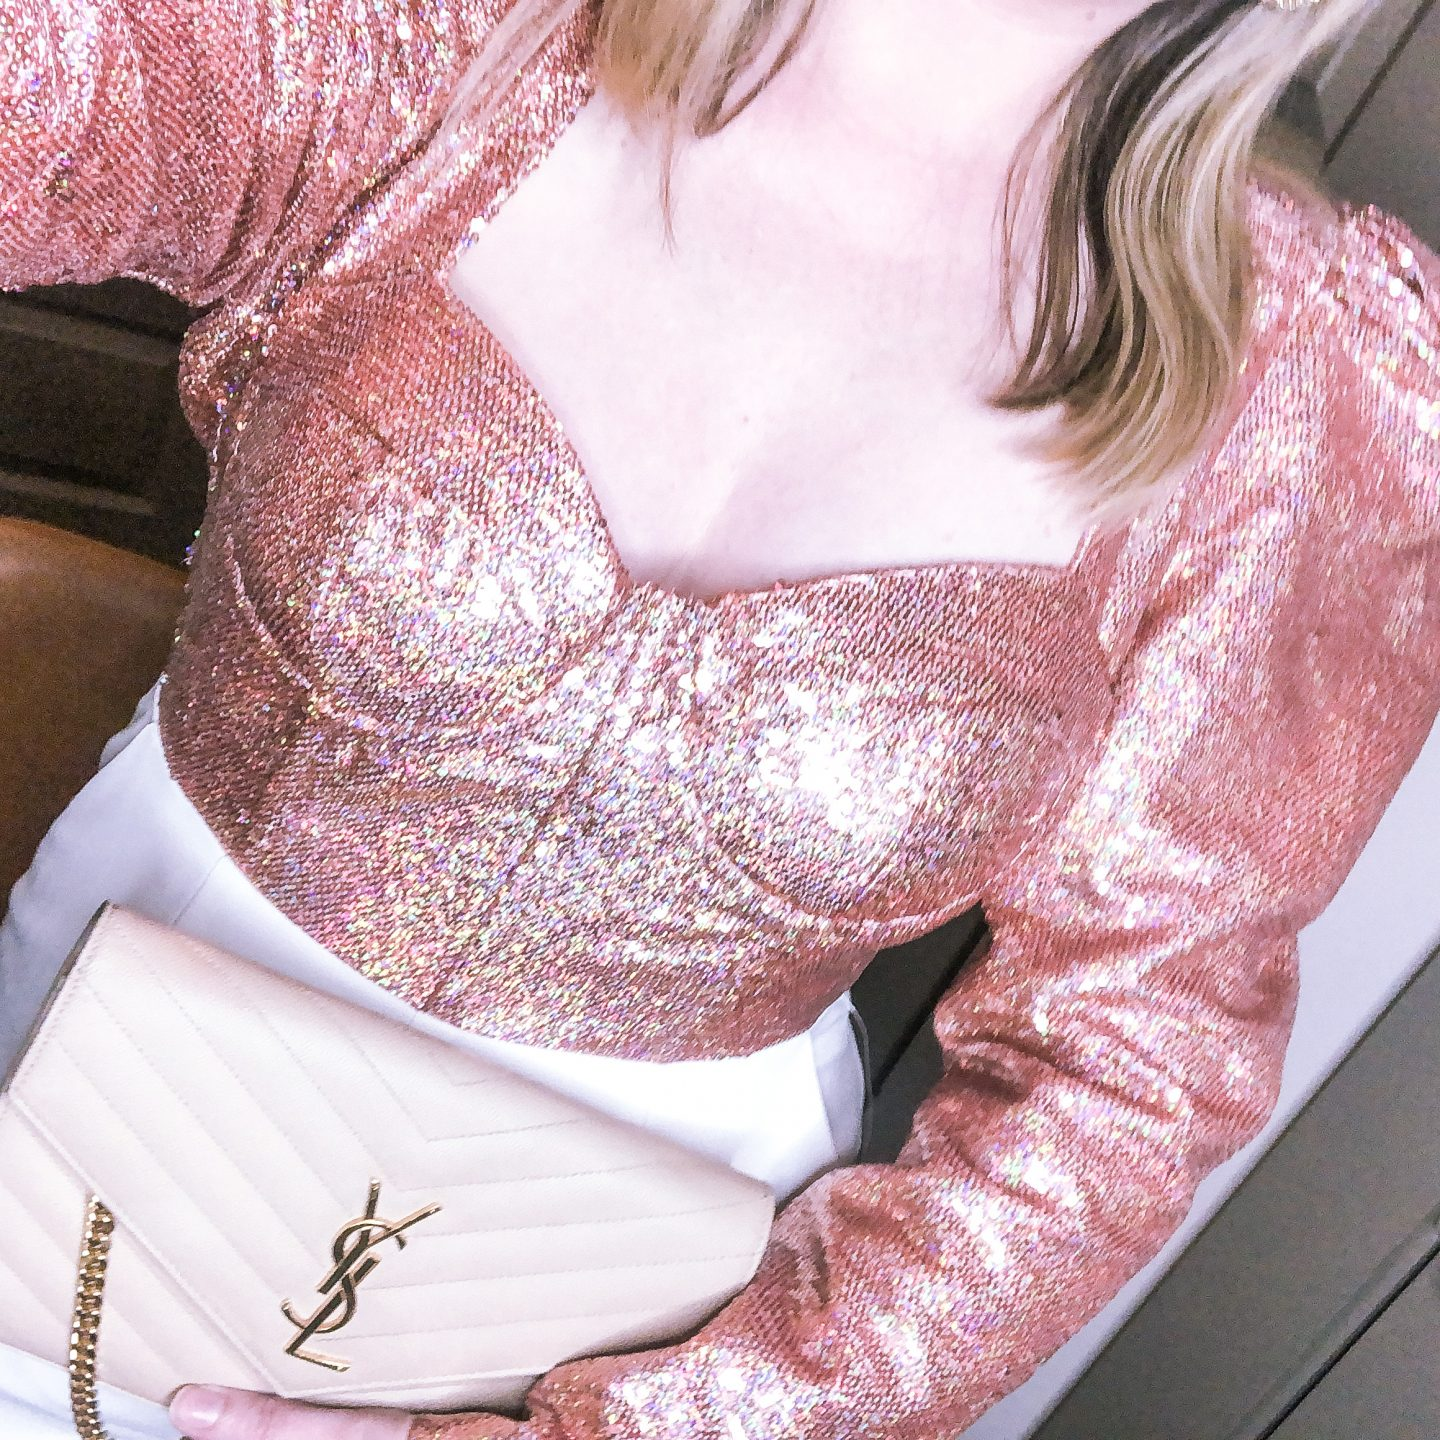 5 Easy To Copy Date Night Outfits 2021